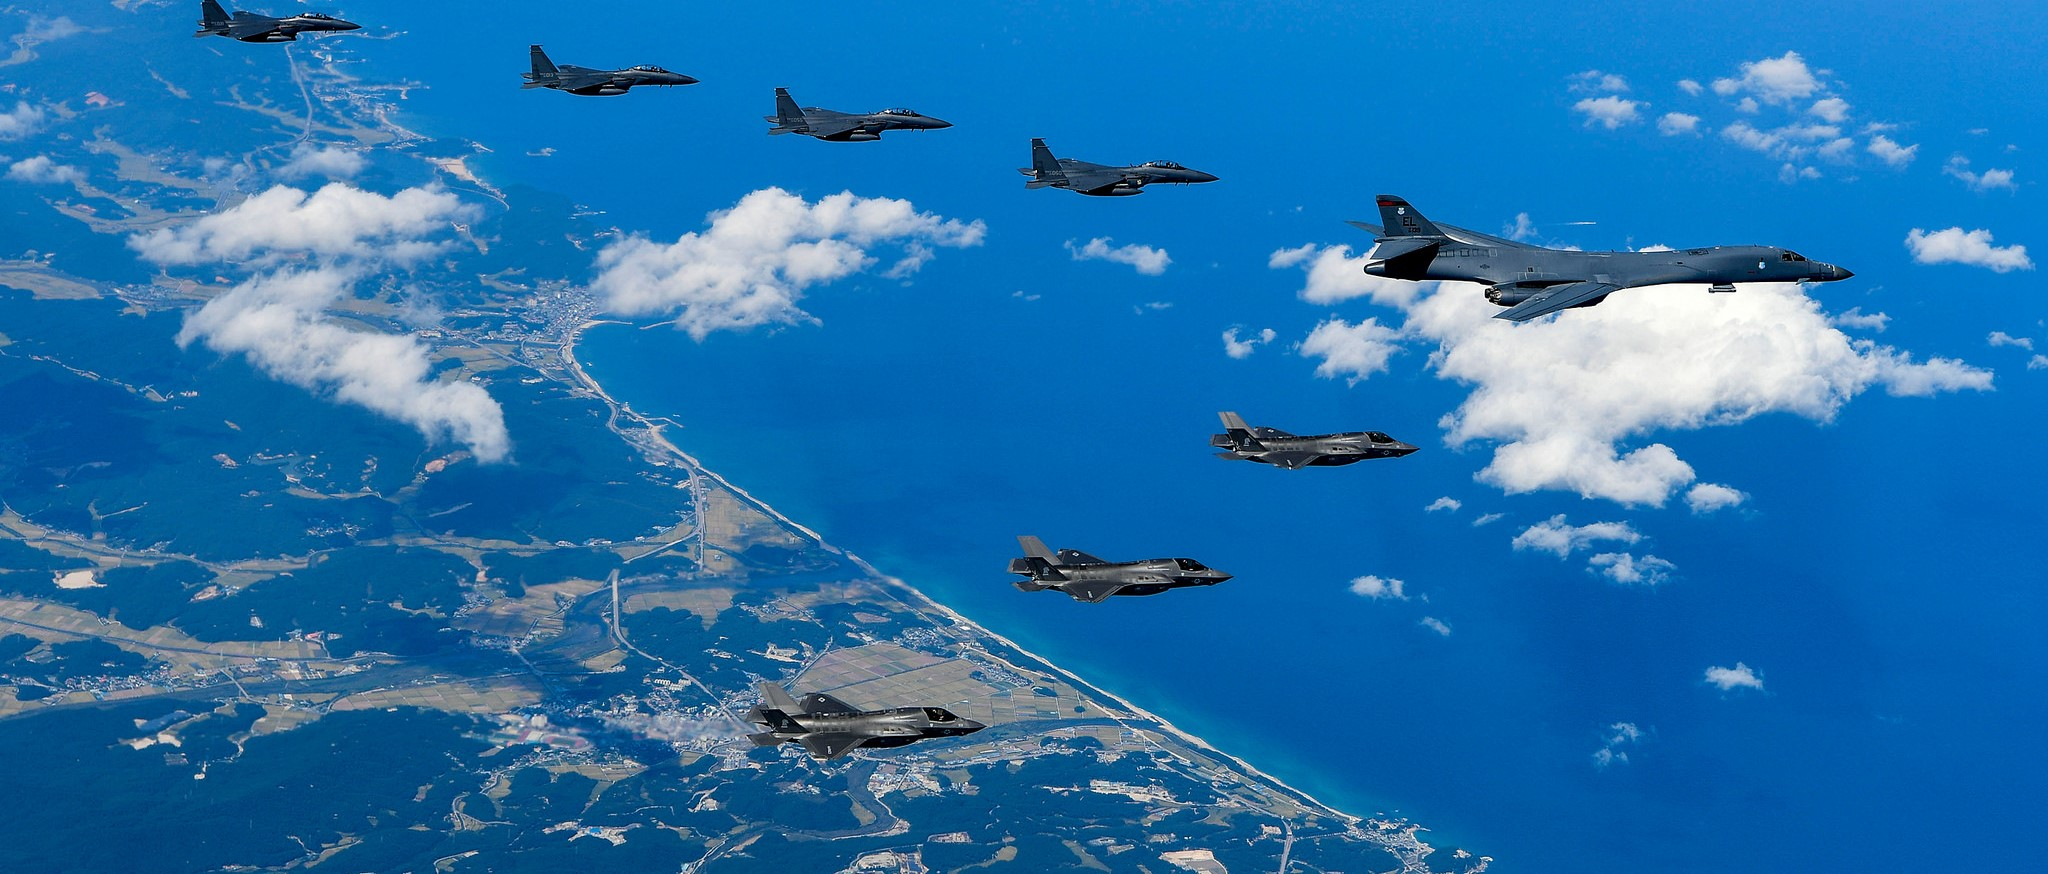 US and South Korean air forces conduct a mission over the Korean Peninsula, September 2017 (Photo: US Pacific Command/Flickr)